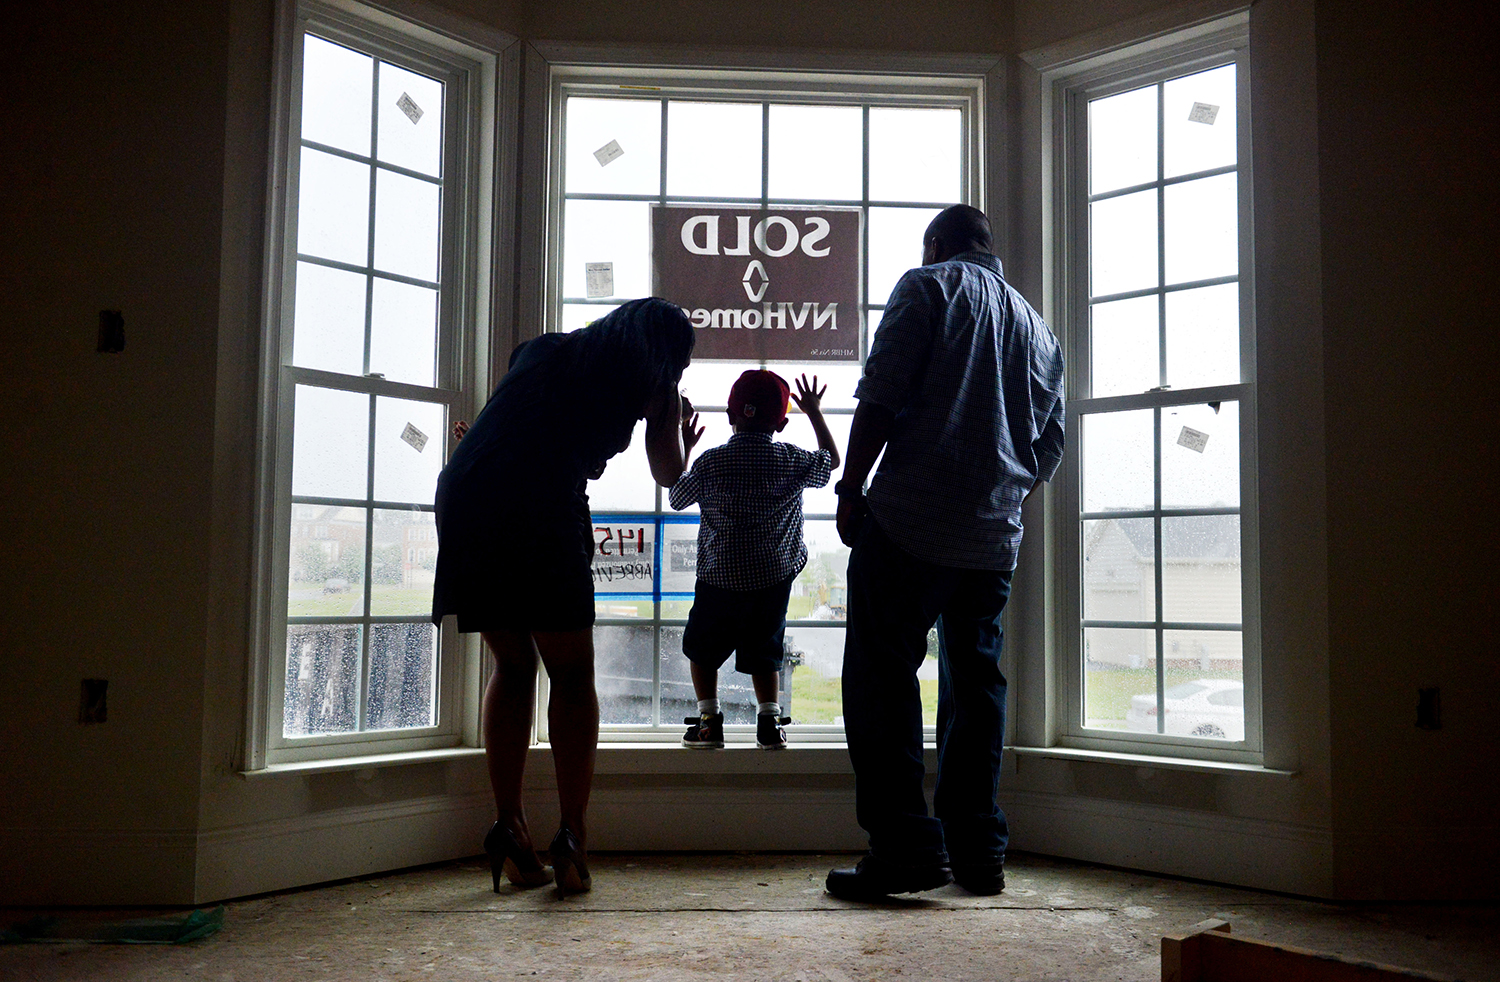 UPPER MARLBORO, MD- JUNE, 28:  Chantal Johnson, holding her youngest son, Kaleb, 5-months,  accompanied by her eldest son, Khalil, 4, and husband Waldo Johnson, left, look out the front window of their new home during a walkthrough on Friday, June 28, 2013 in Upper Marlboro, MD.  The 4-bedroom home, located in Oak Creek, a gated community in Prince George's County, is near completion and will be ready for the family to move-in in the coming months.  (Photo by Amanda Voisard/For The Washington Post)